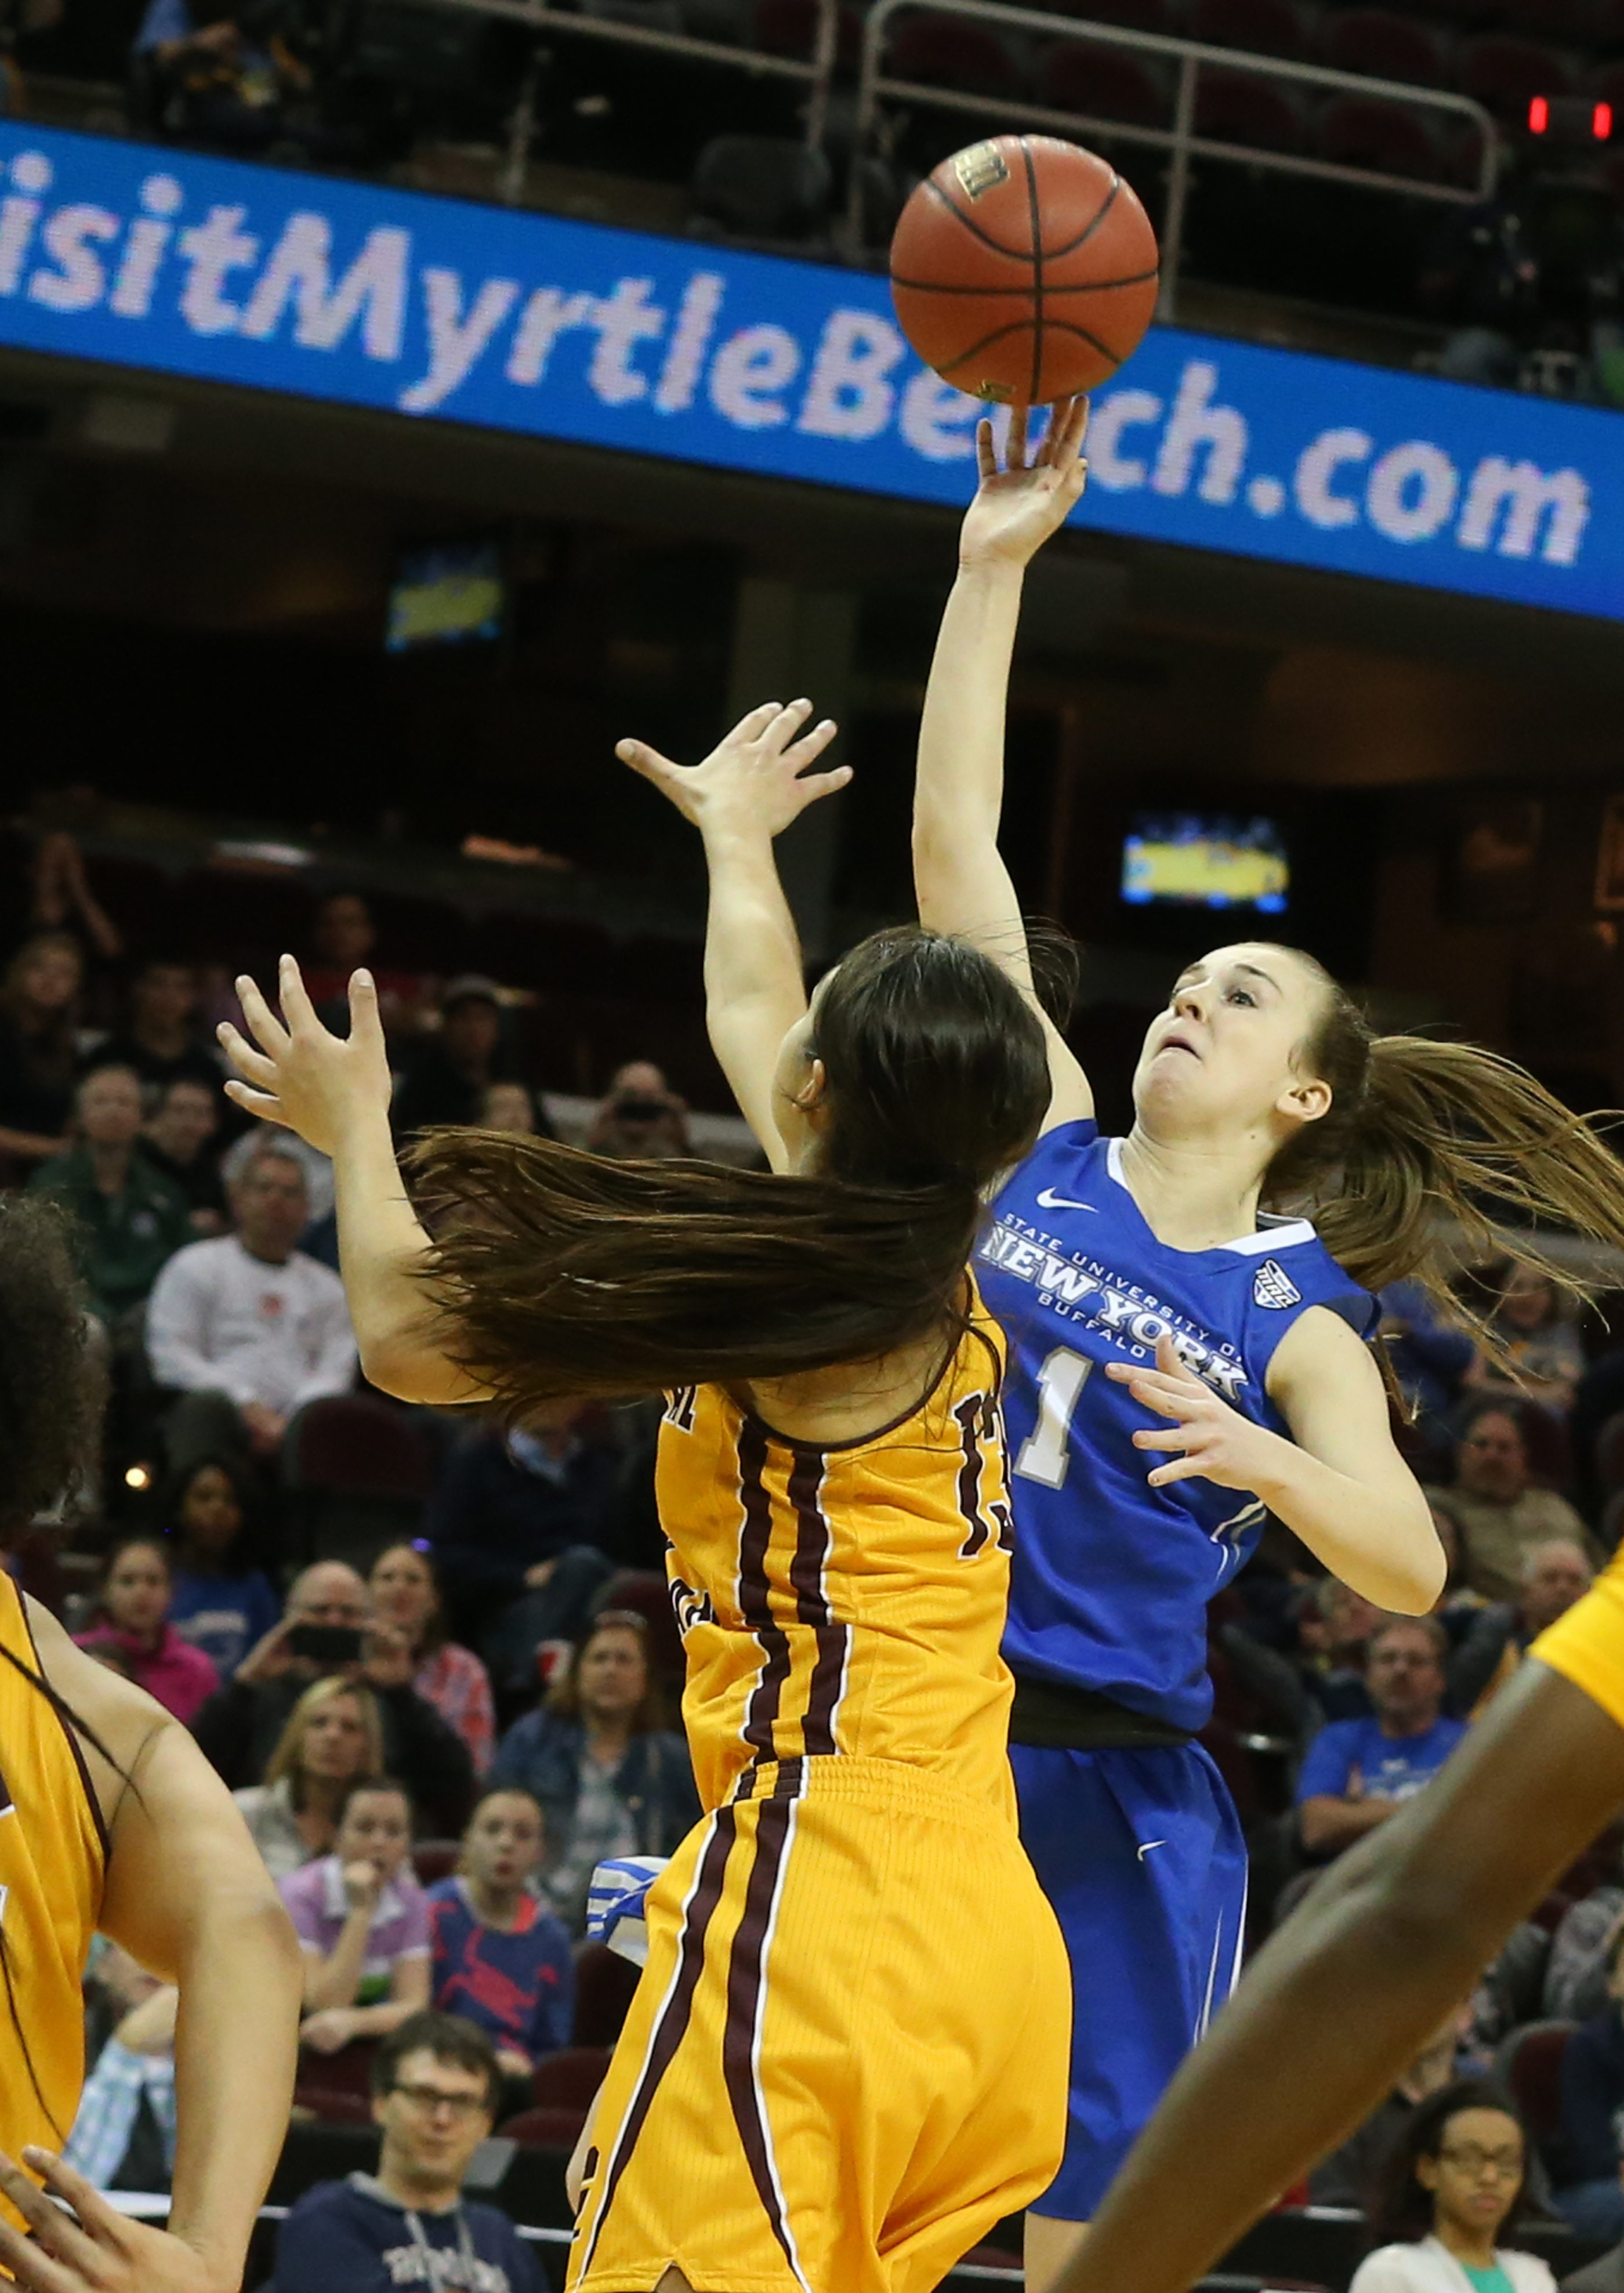 Buffalo Bulls guard Stephanie Reid (1) scores the game winning shot over Central Michigan Chippewas forward Reyna Frost (13) in the final second. The Buffalo Bulls beat Central Michigan 73-71 to win their first ever MAC Championship game at Quicken Loans Arena in Cleveland,NY on Saturday, March 12, 2016. (James P. McCoy/ Buffalo News)